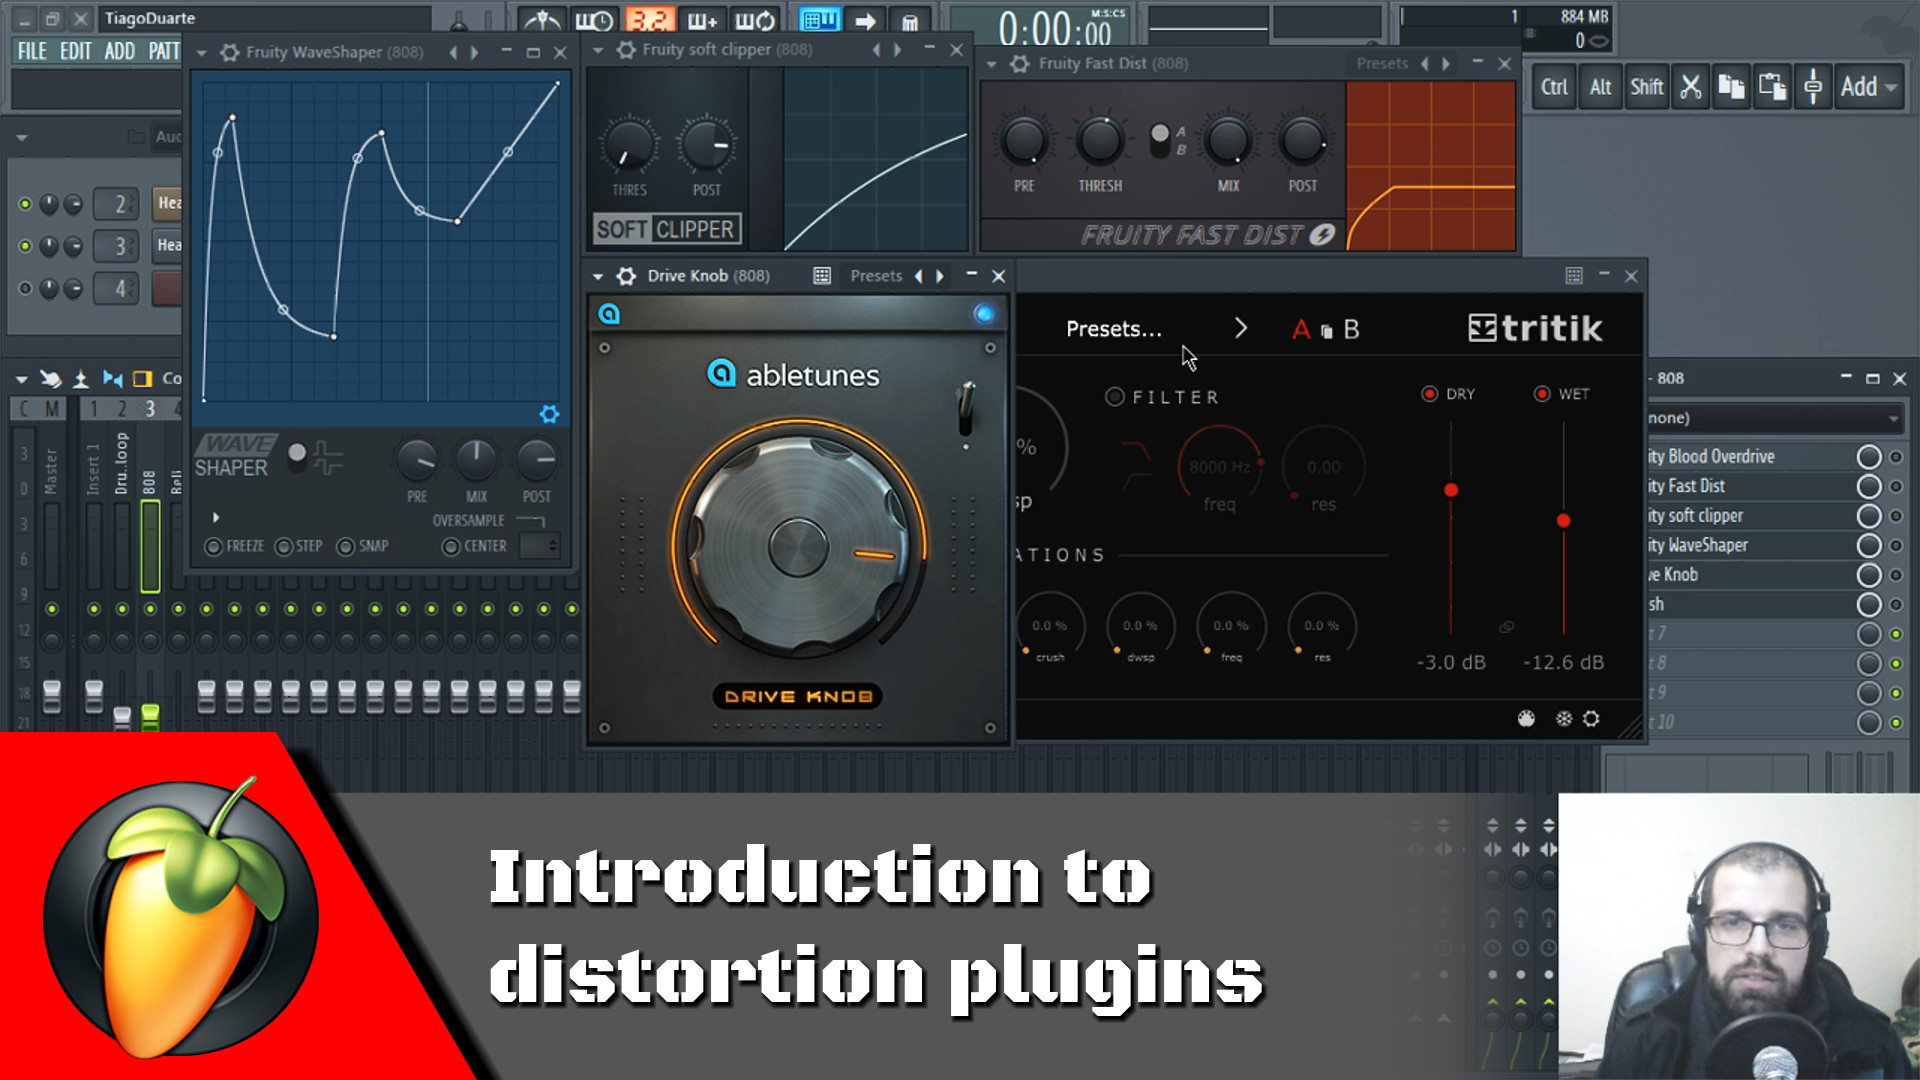 Introduction to distortion plugins